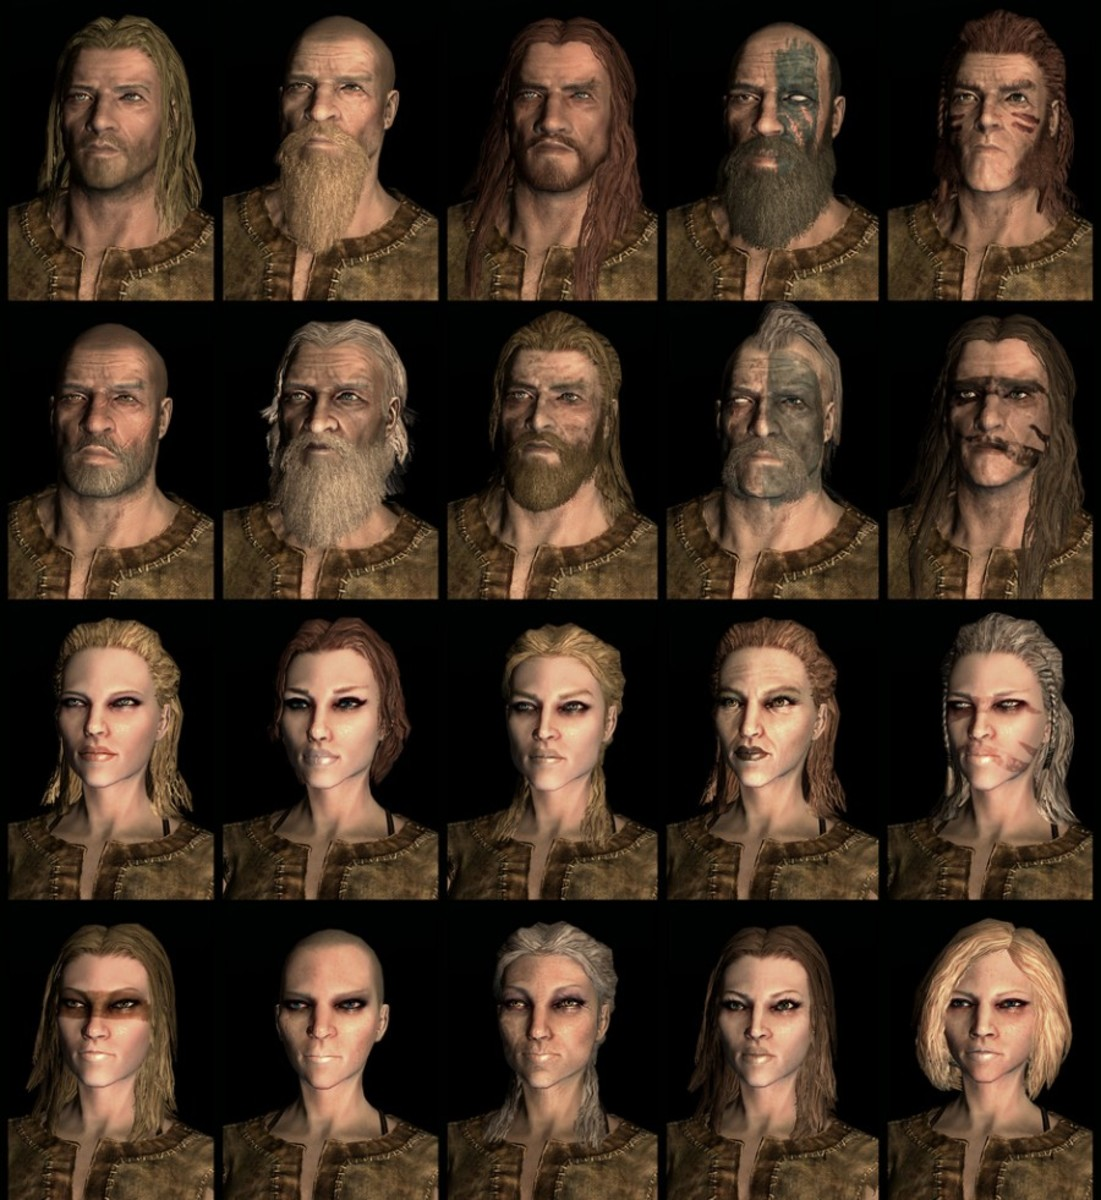 Compilation of Skyrim Nord faces